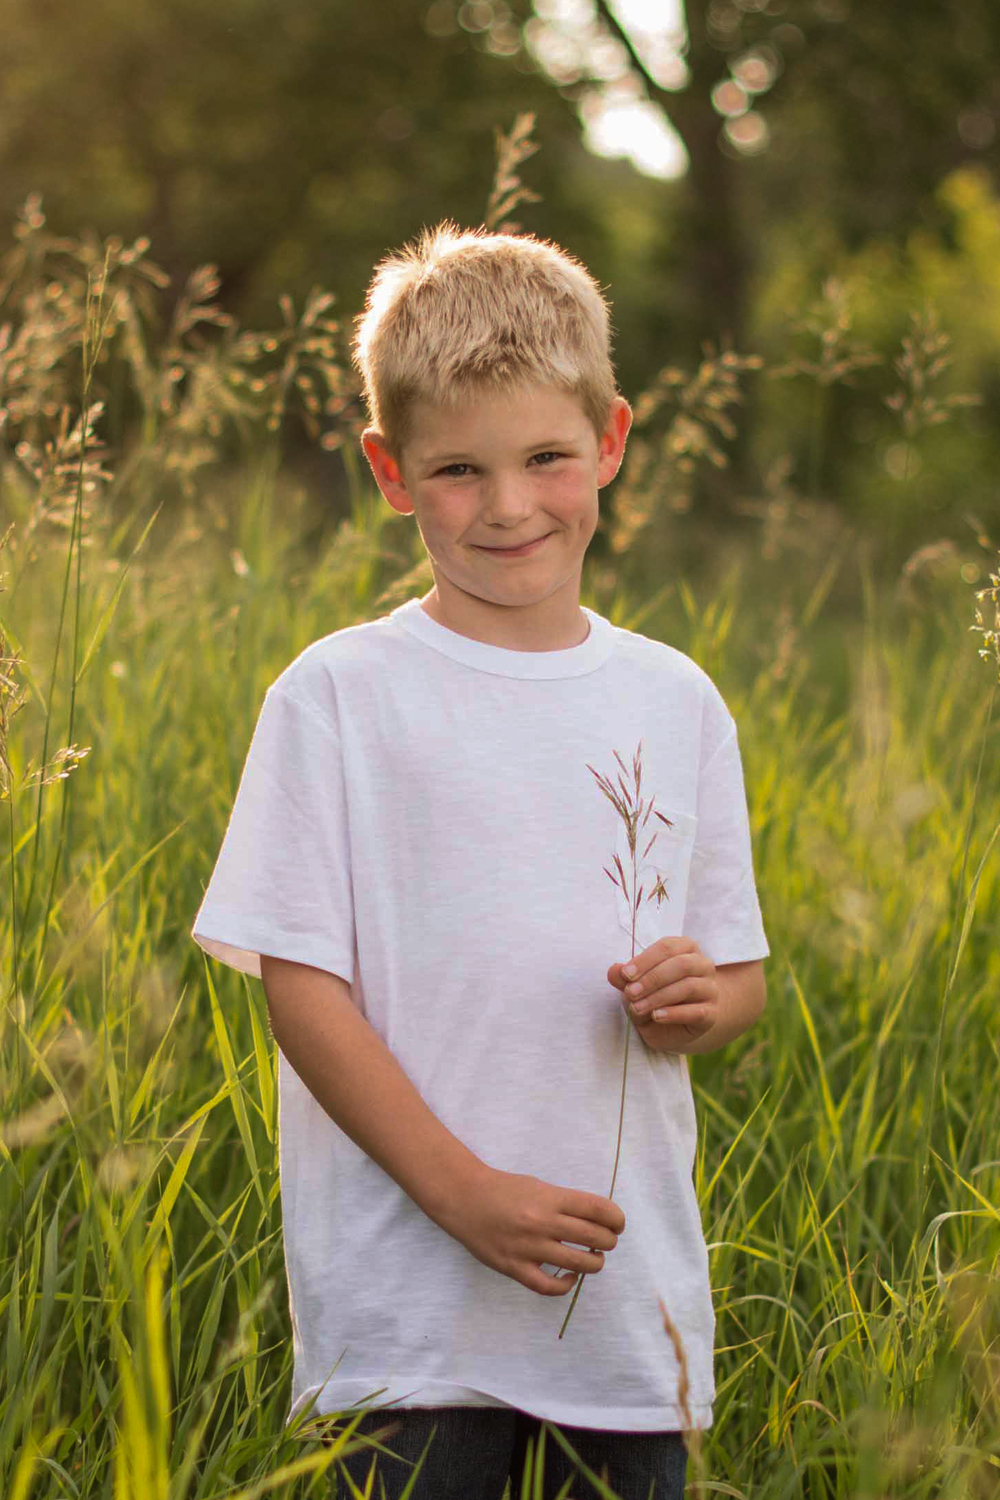 calgary kids, child & tween photographer